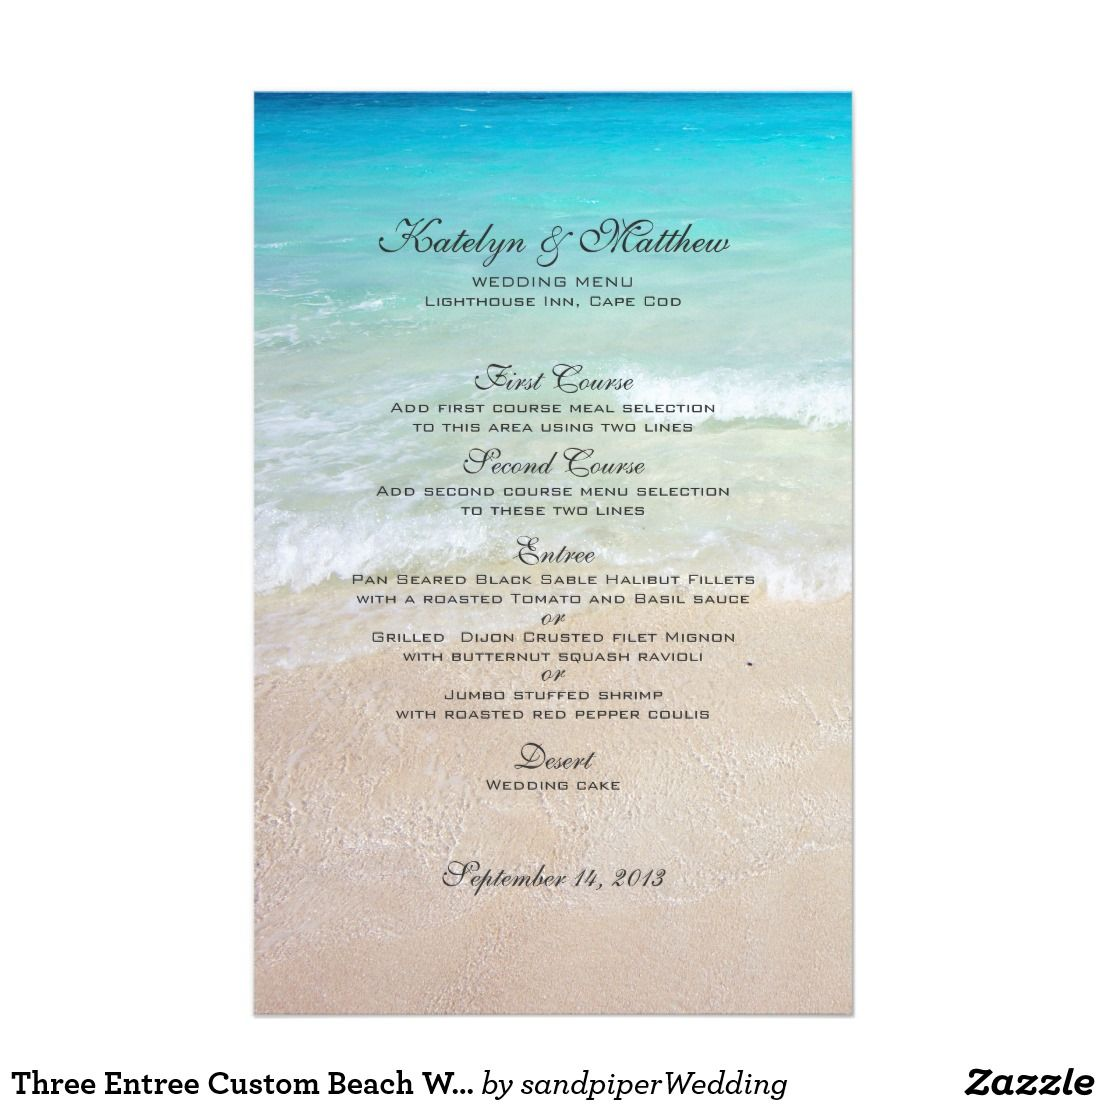 Three Entree Custom Beach Wedding Menu Wedding Menu Beach